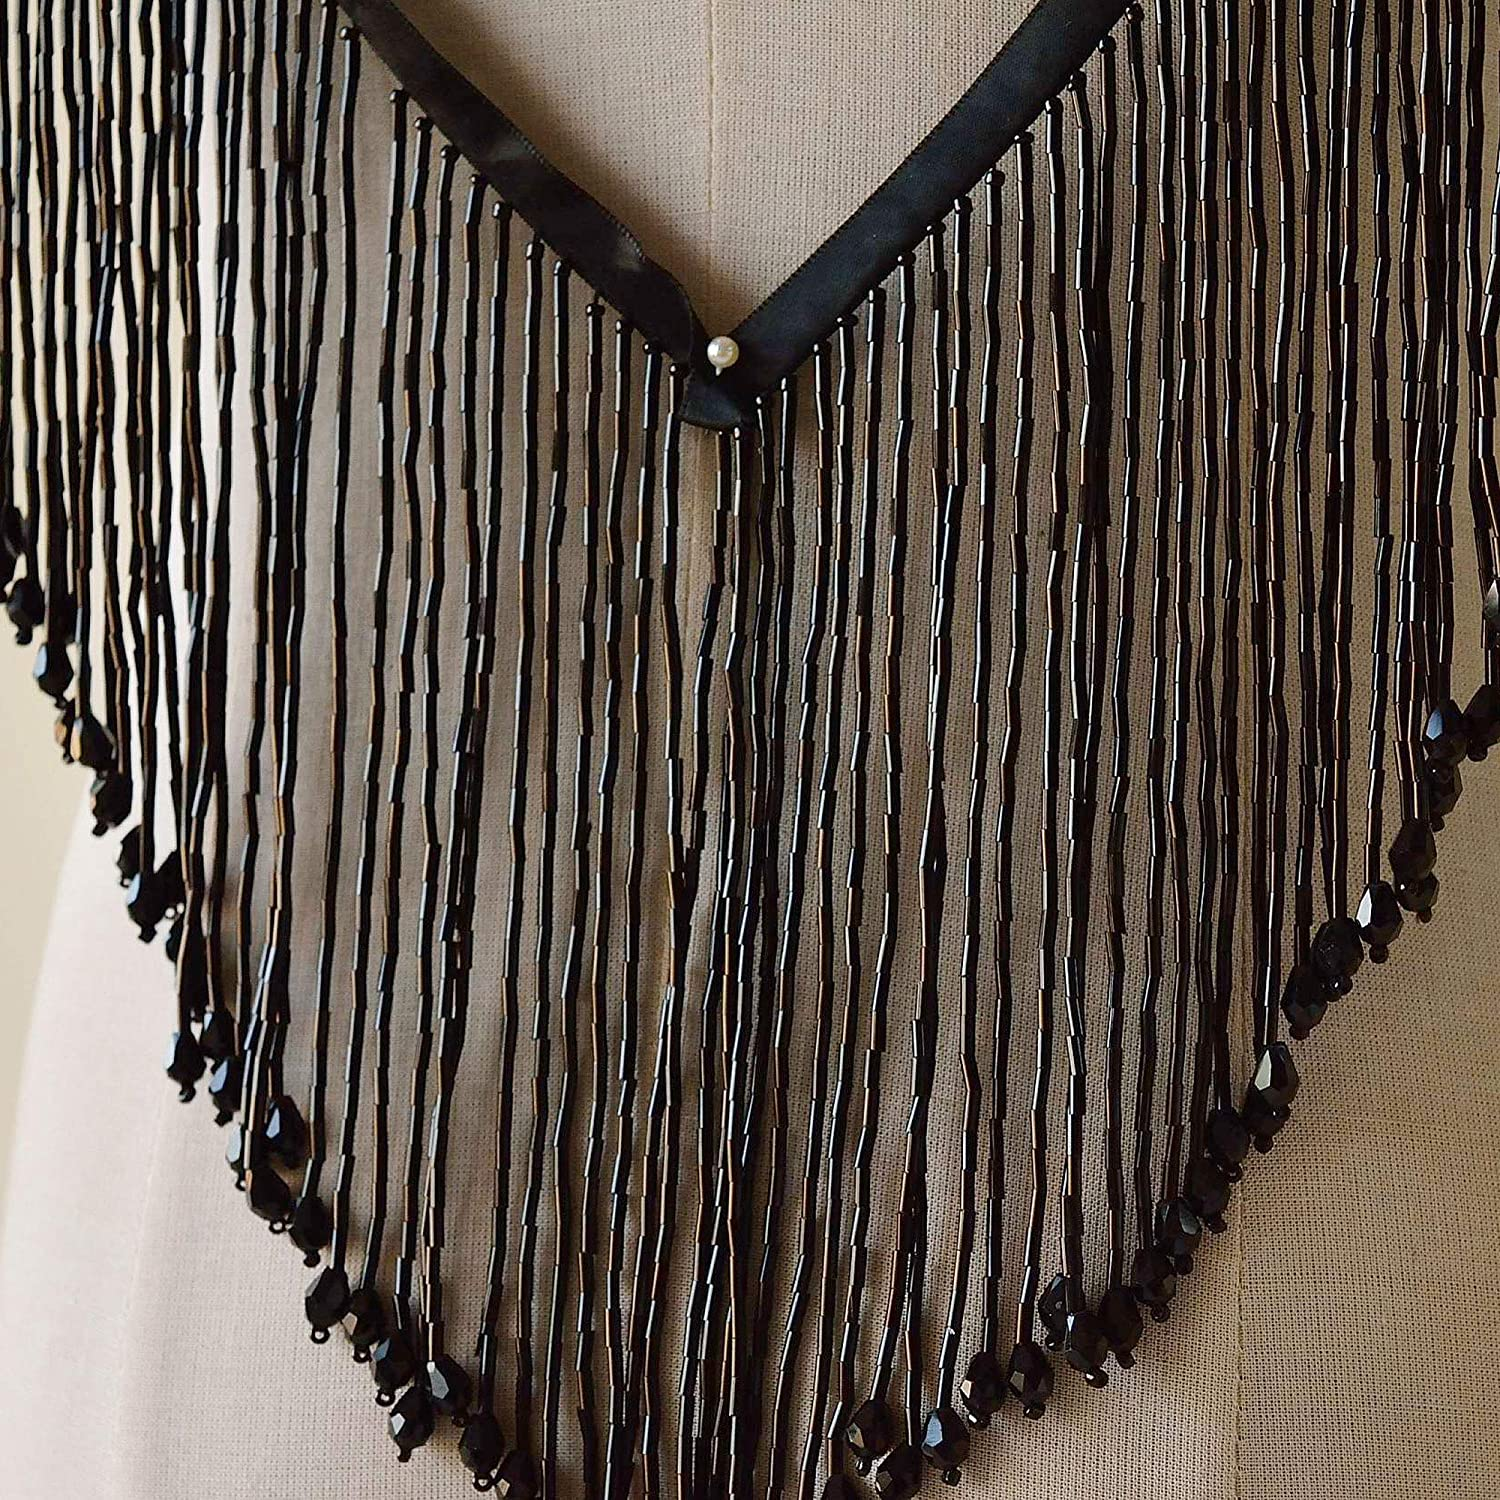 Dangling Fringe Trims by The Yard Beaded Fringe Trim Heavy Beads Fringe Dress Tassel for Party Costumes Ivory Color